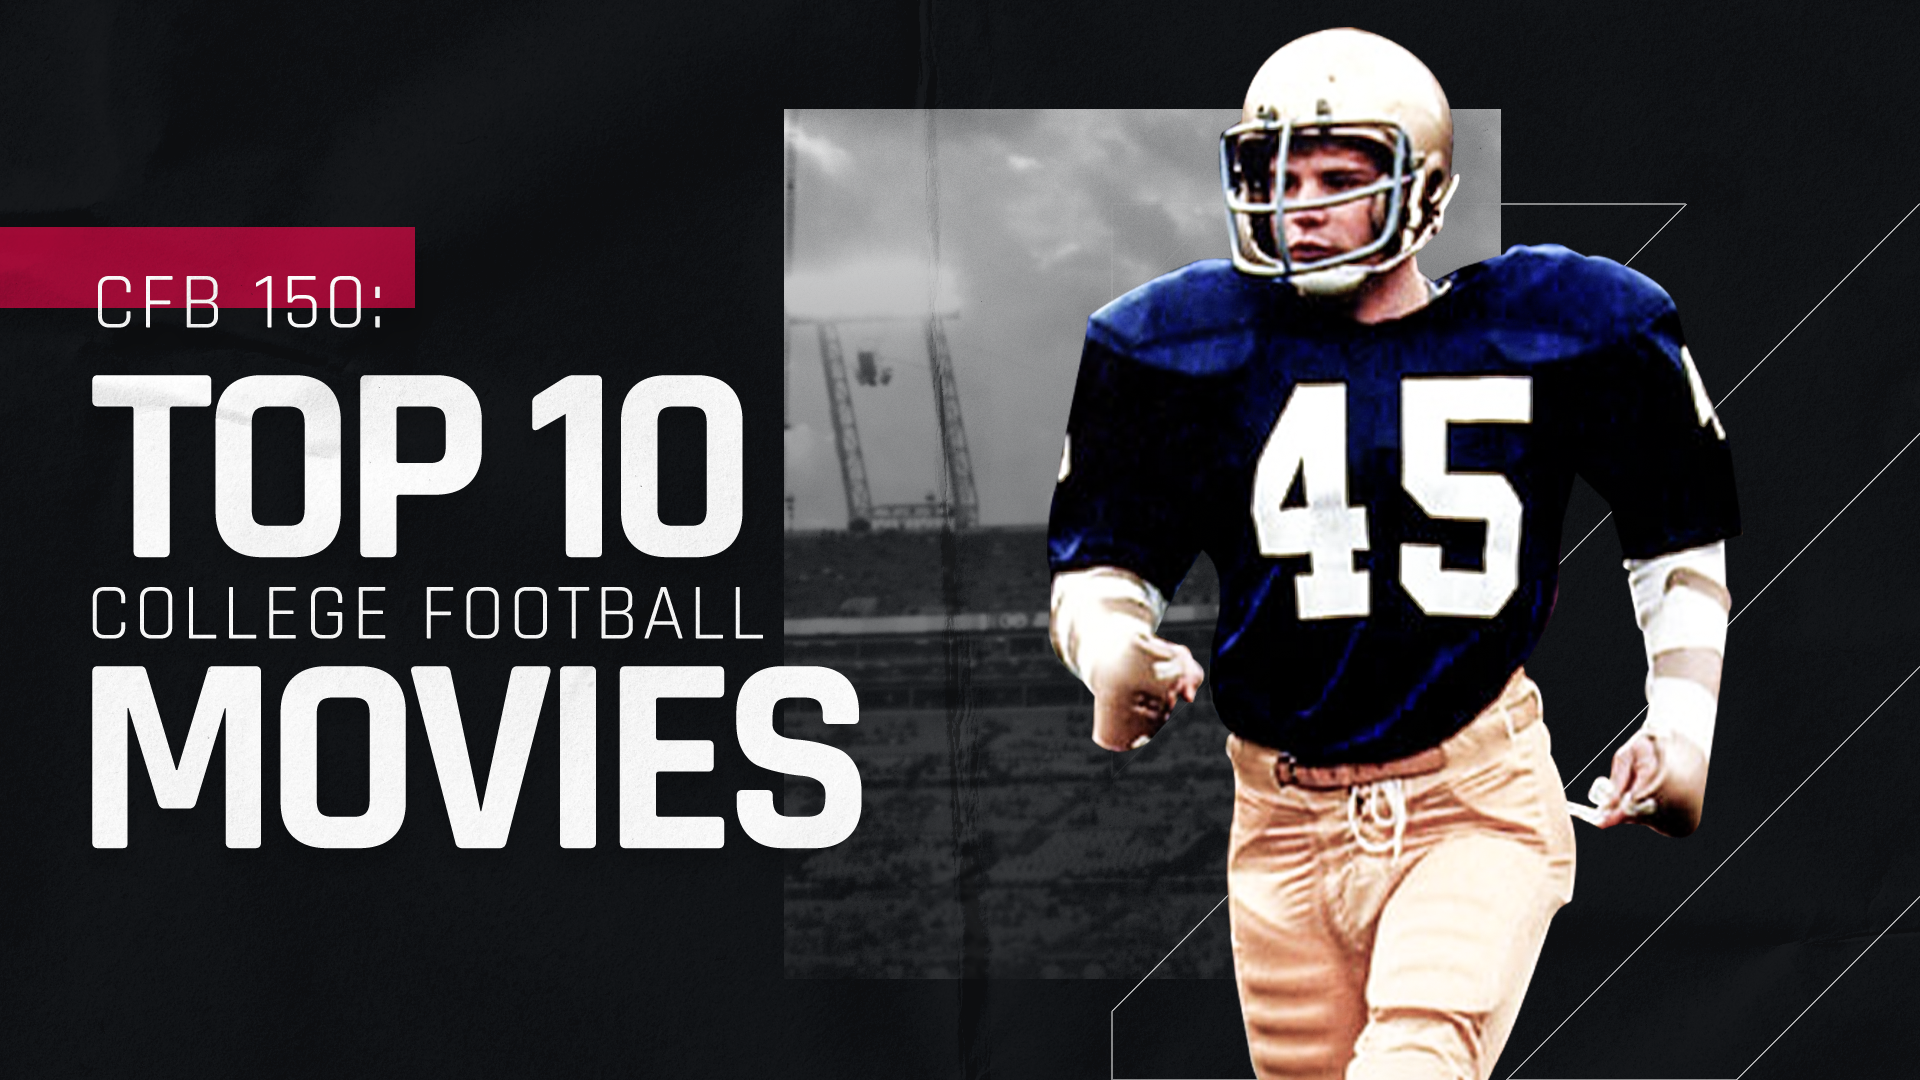 CFB 150: Top 10 college football movies of all time